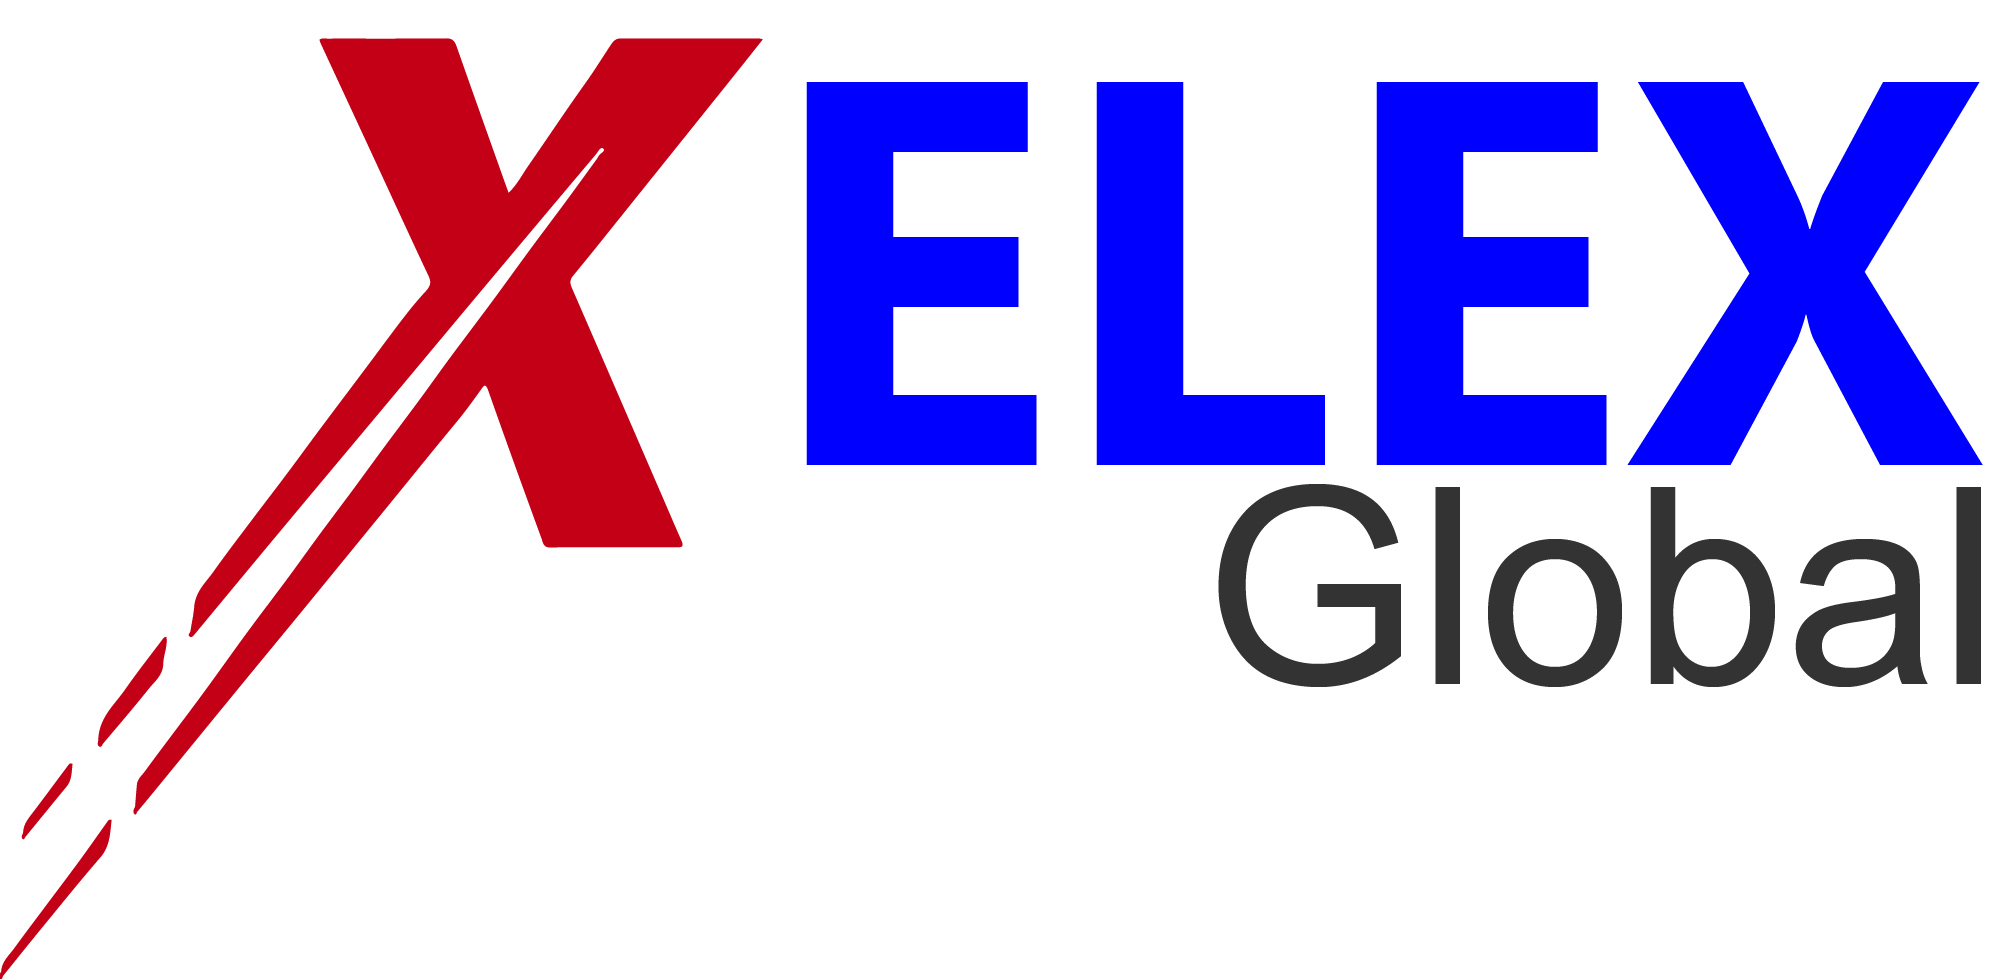 Xelex Global Ltd